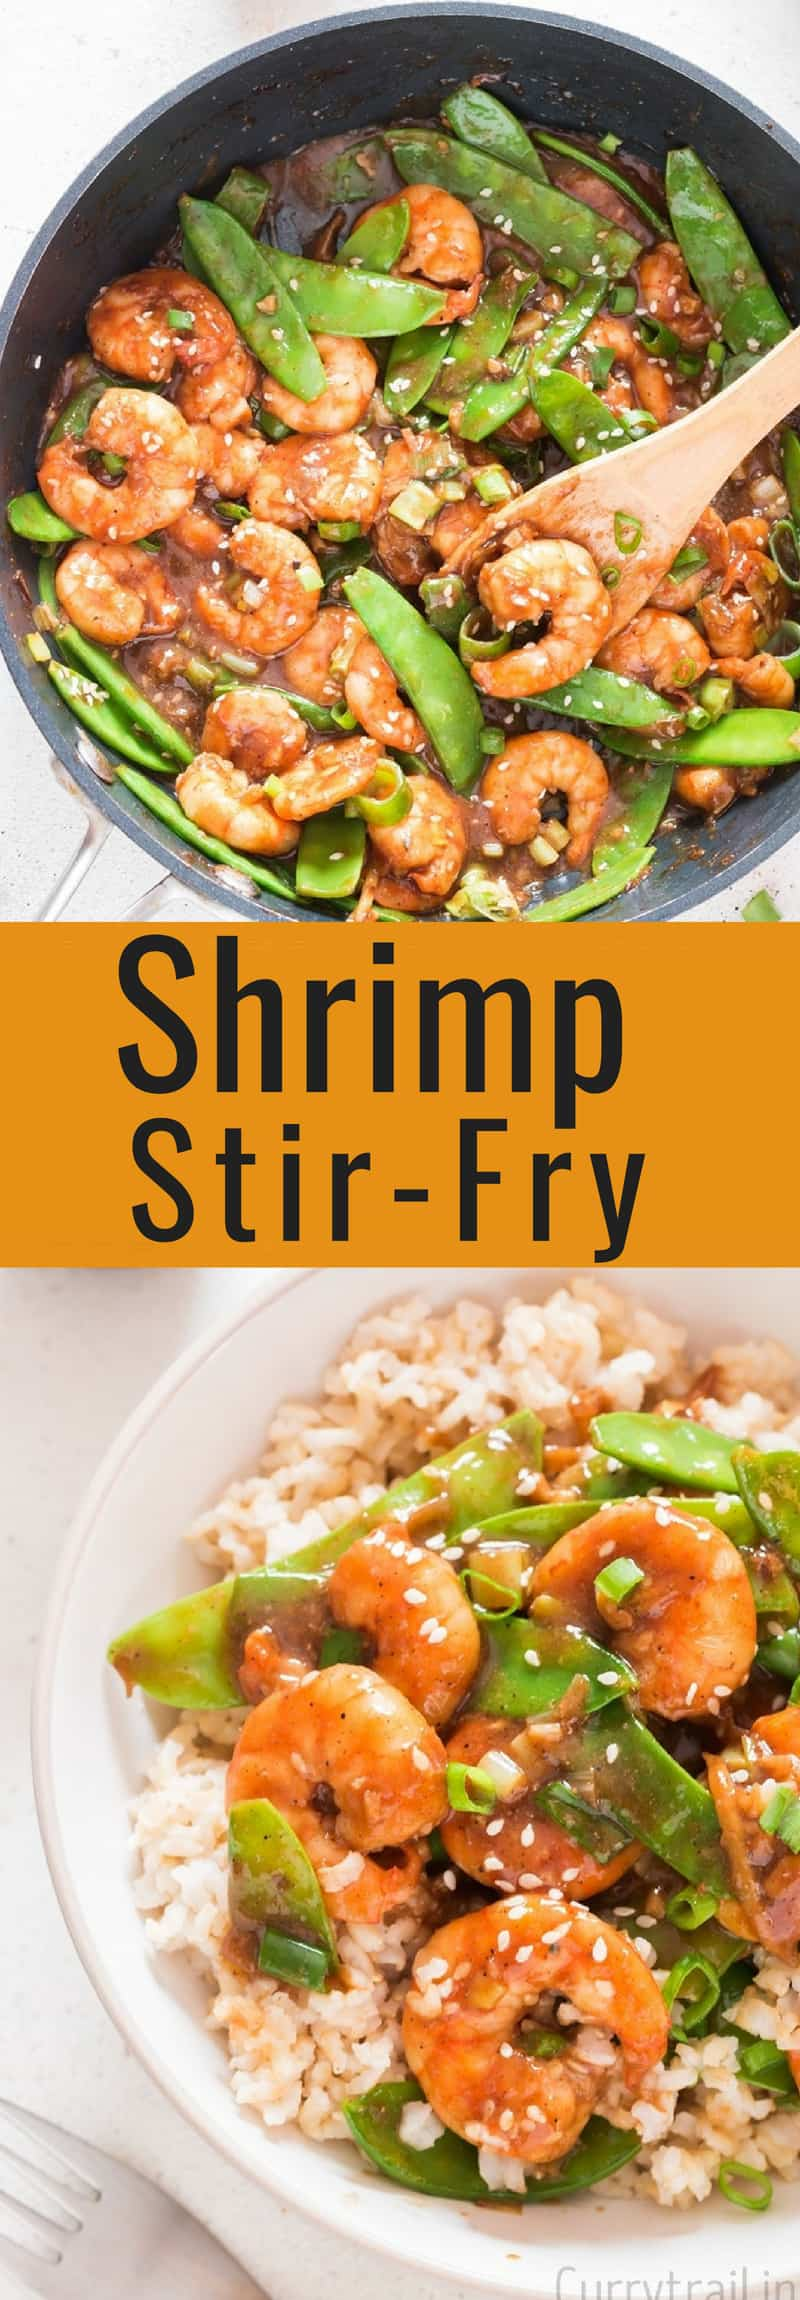 Healthy shrimp stir fry with text overlay